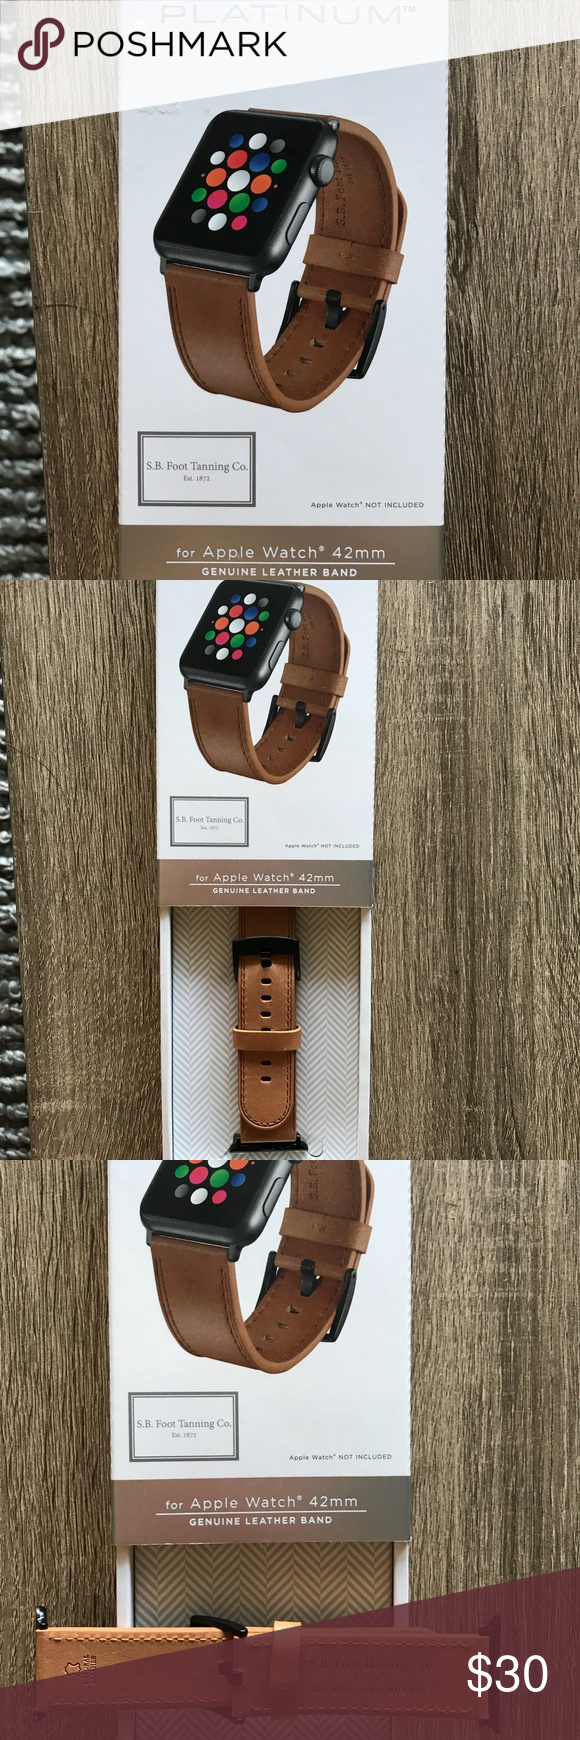 finest selection 53d88 31afb NWOT Platinum Brand Leather 42mm Apple Watch Strap Brand new, box ...